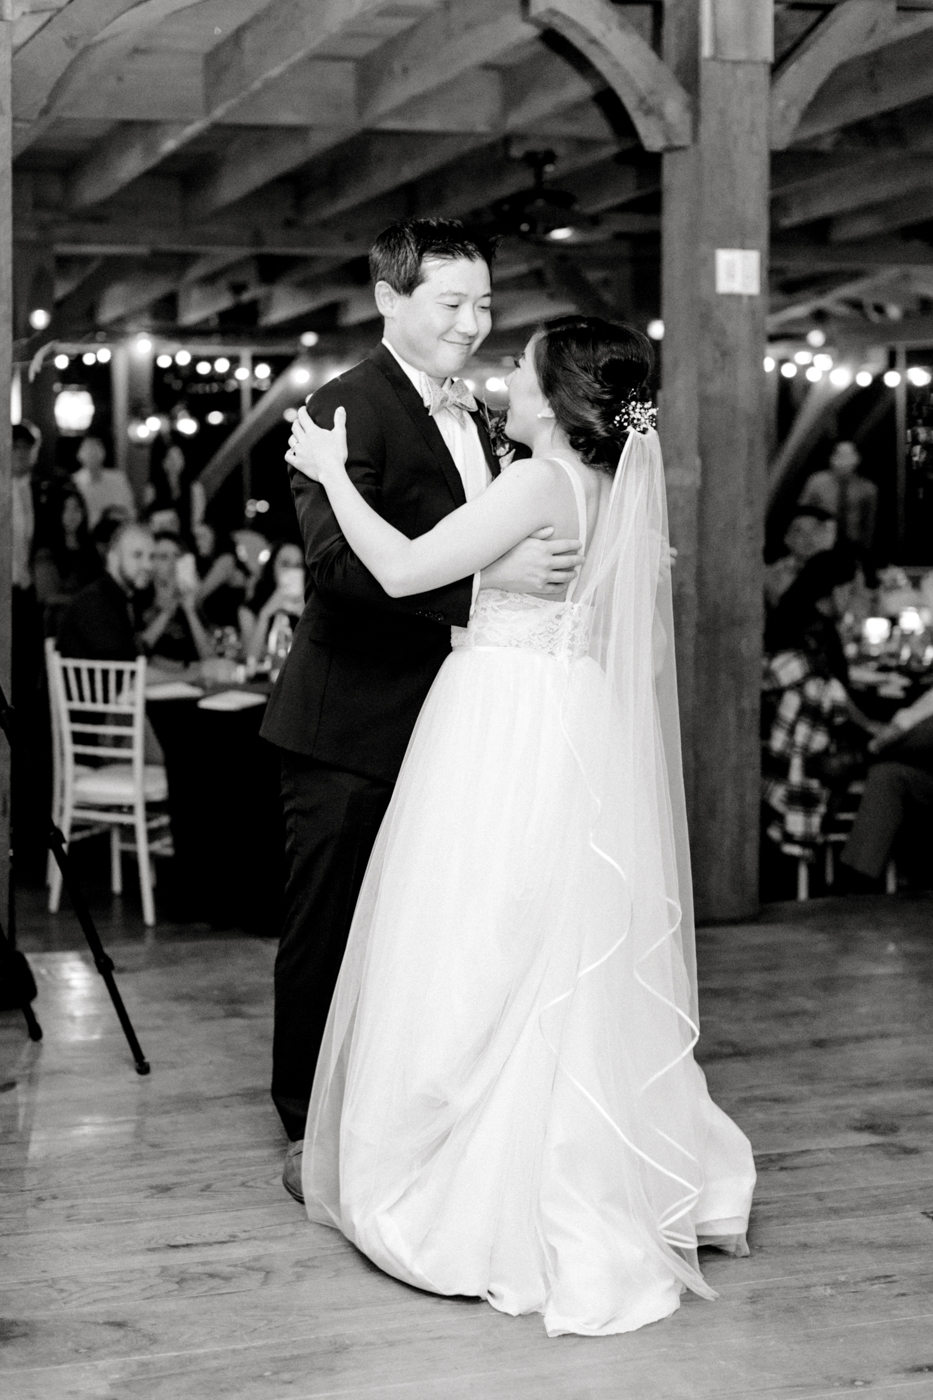 four corners photography helena and sunny rockys lake estate wedding north georgia wedding photographer best atlanta wedding photographer (38 of 51).jpg